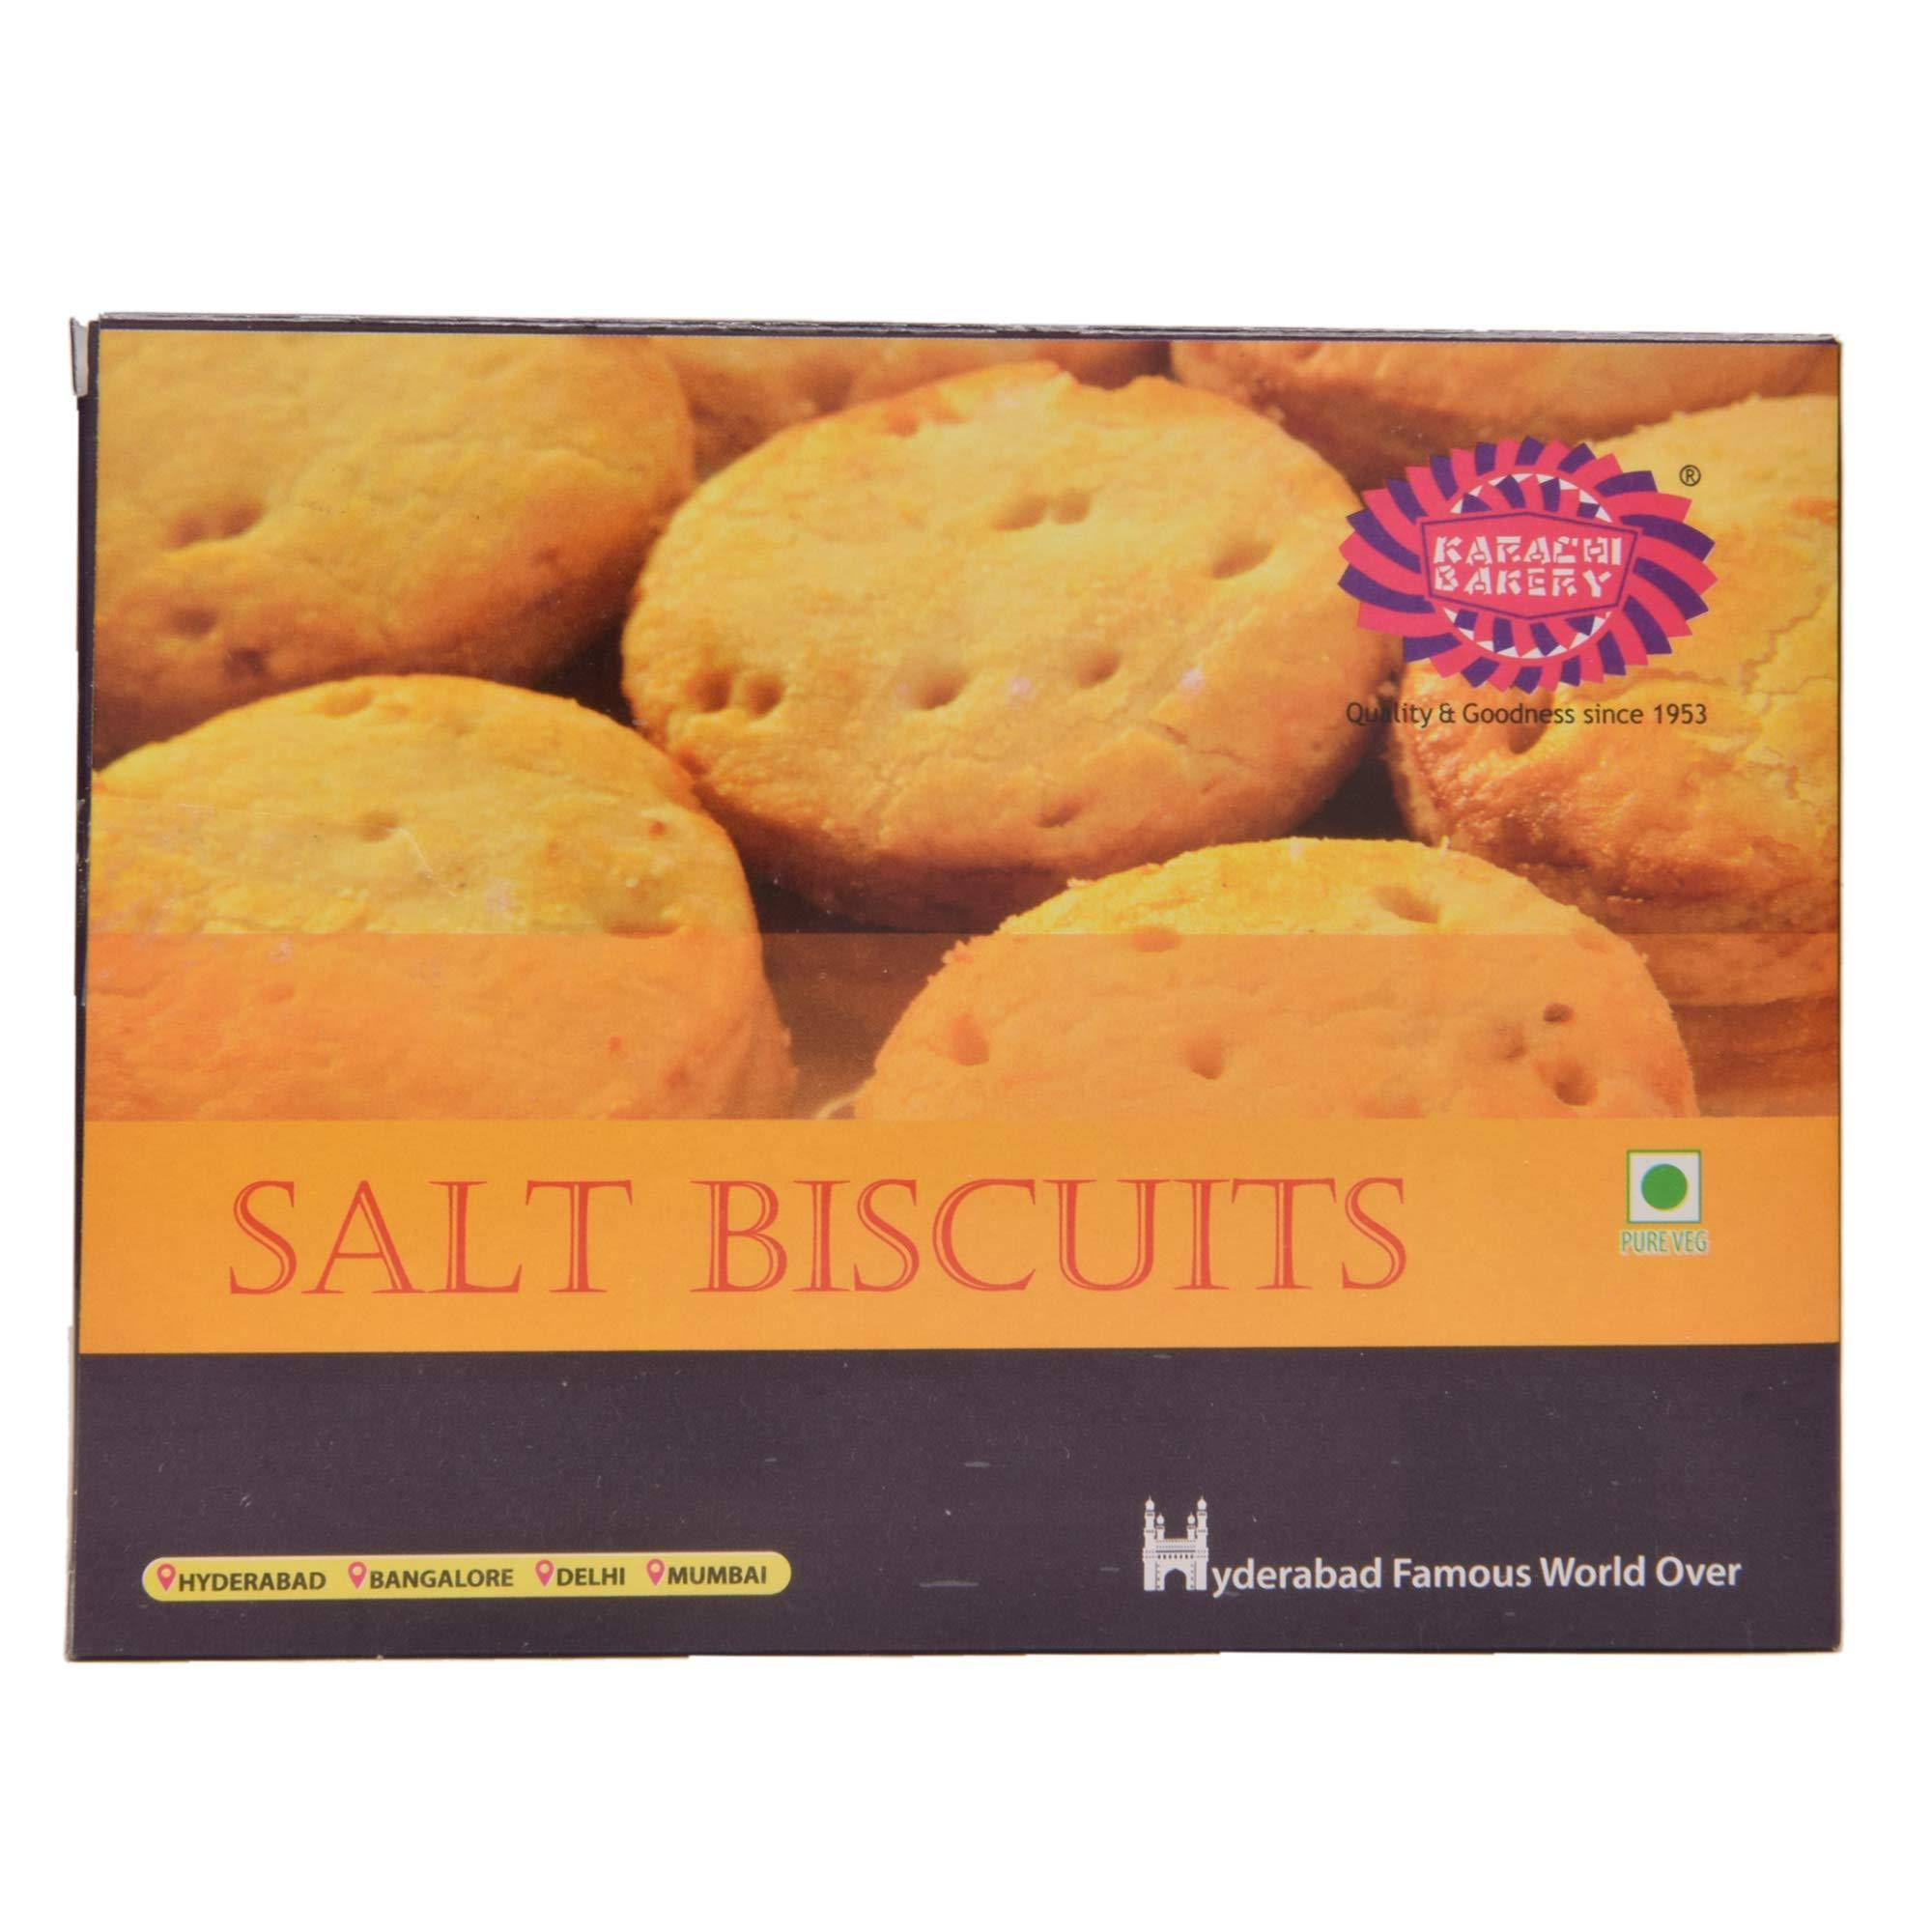 Karachi Bakery Salt Biscuits 14.1 oz